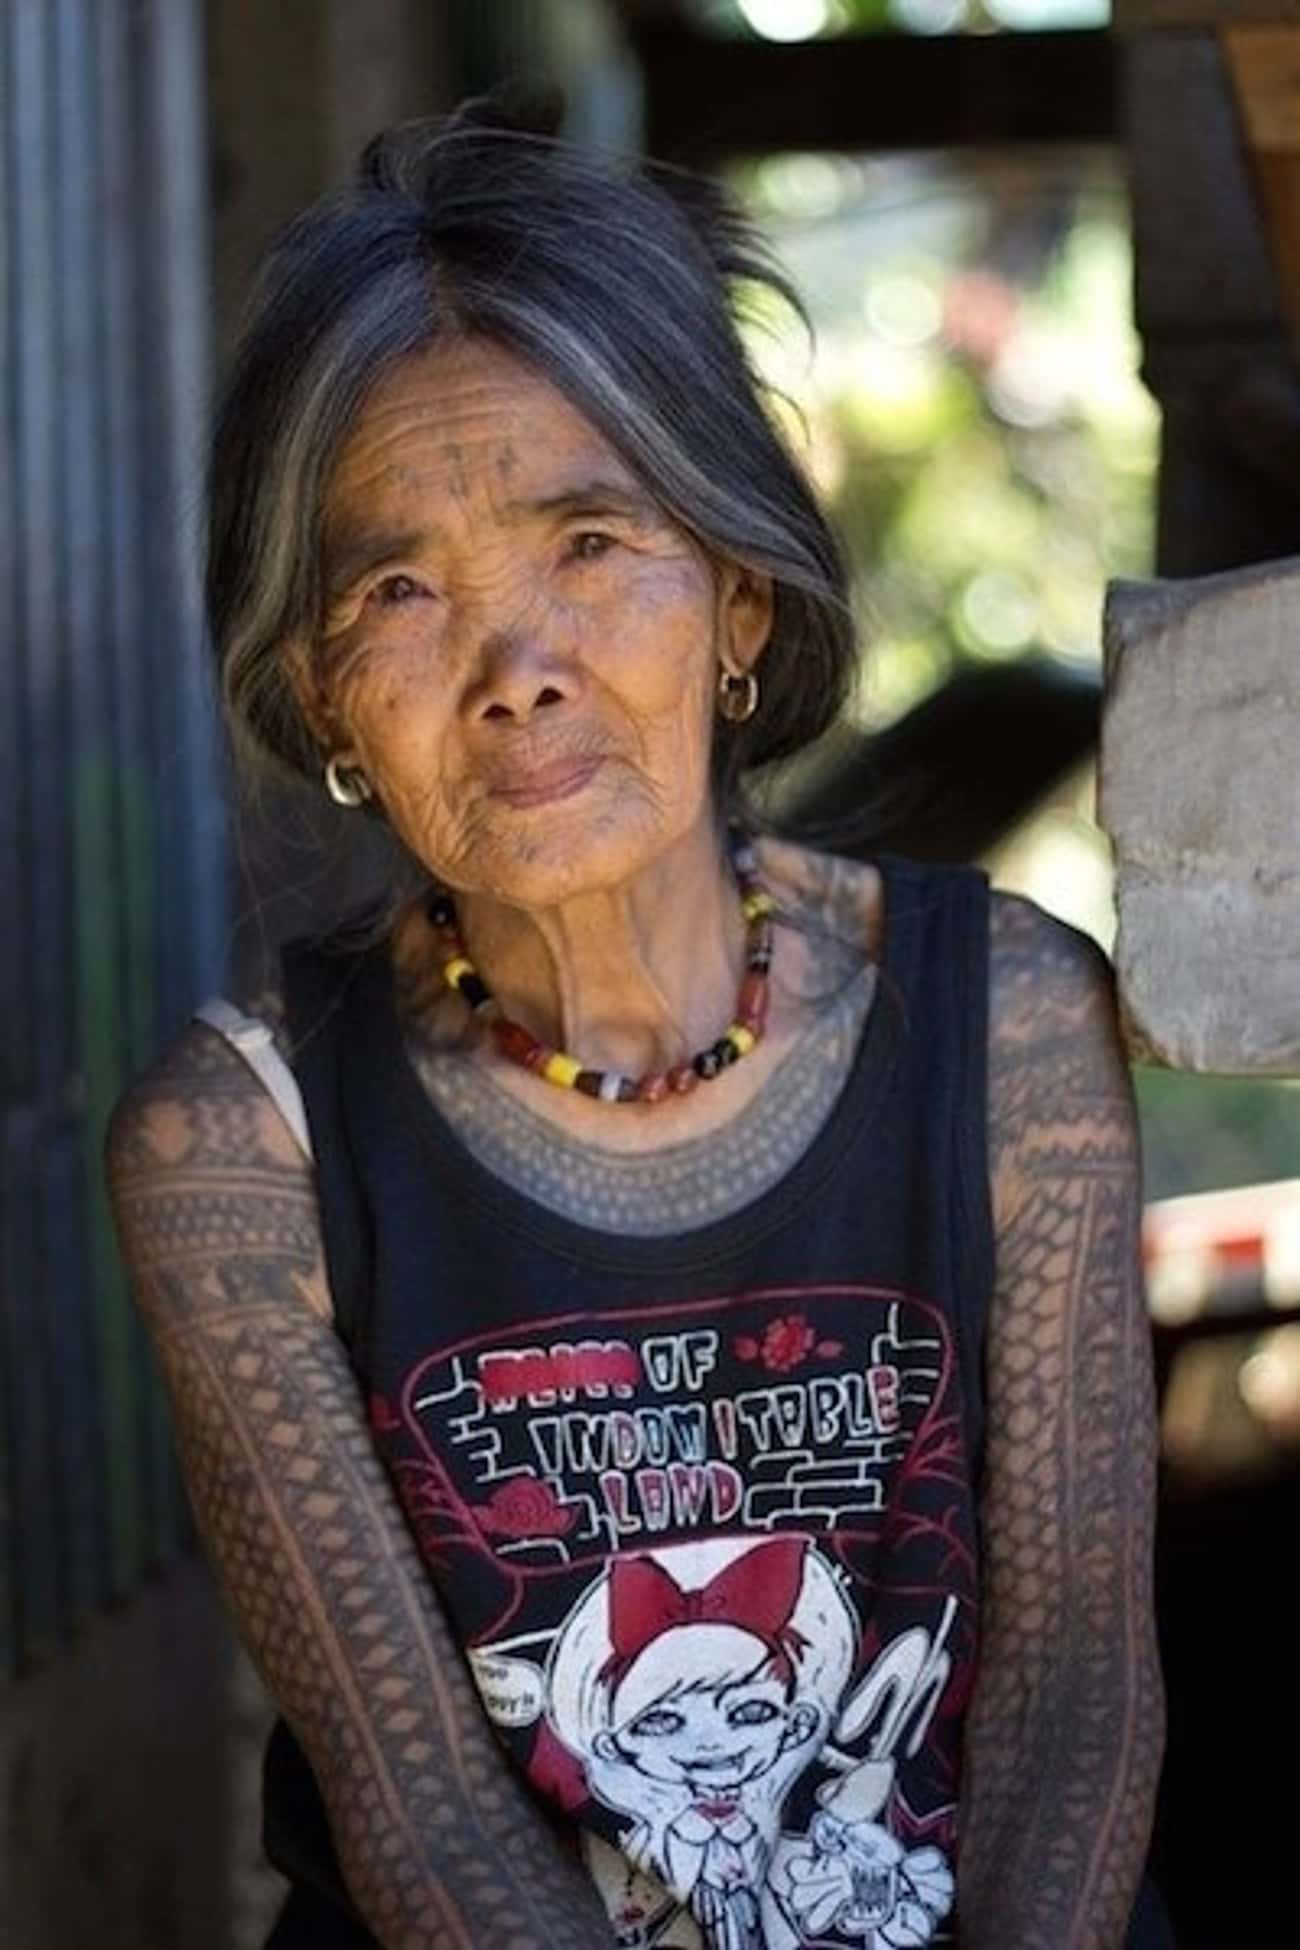 Her Face And Arms Are Full Of  is listed (or ranked) 4 on the list 18 Cool Older People With Tattoos